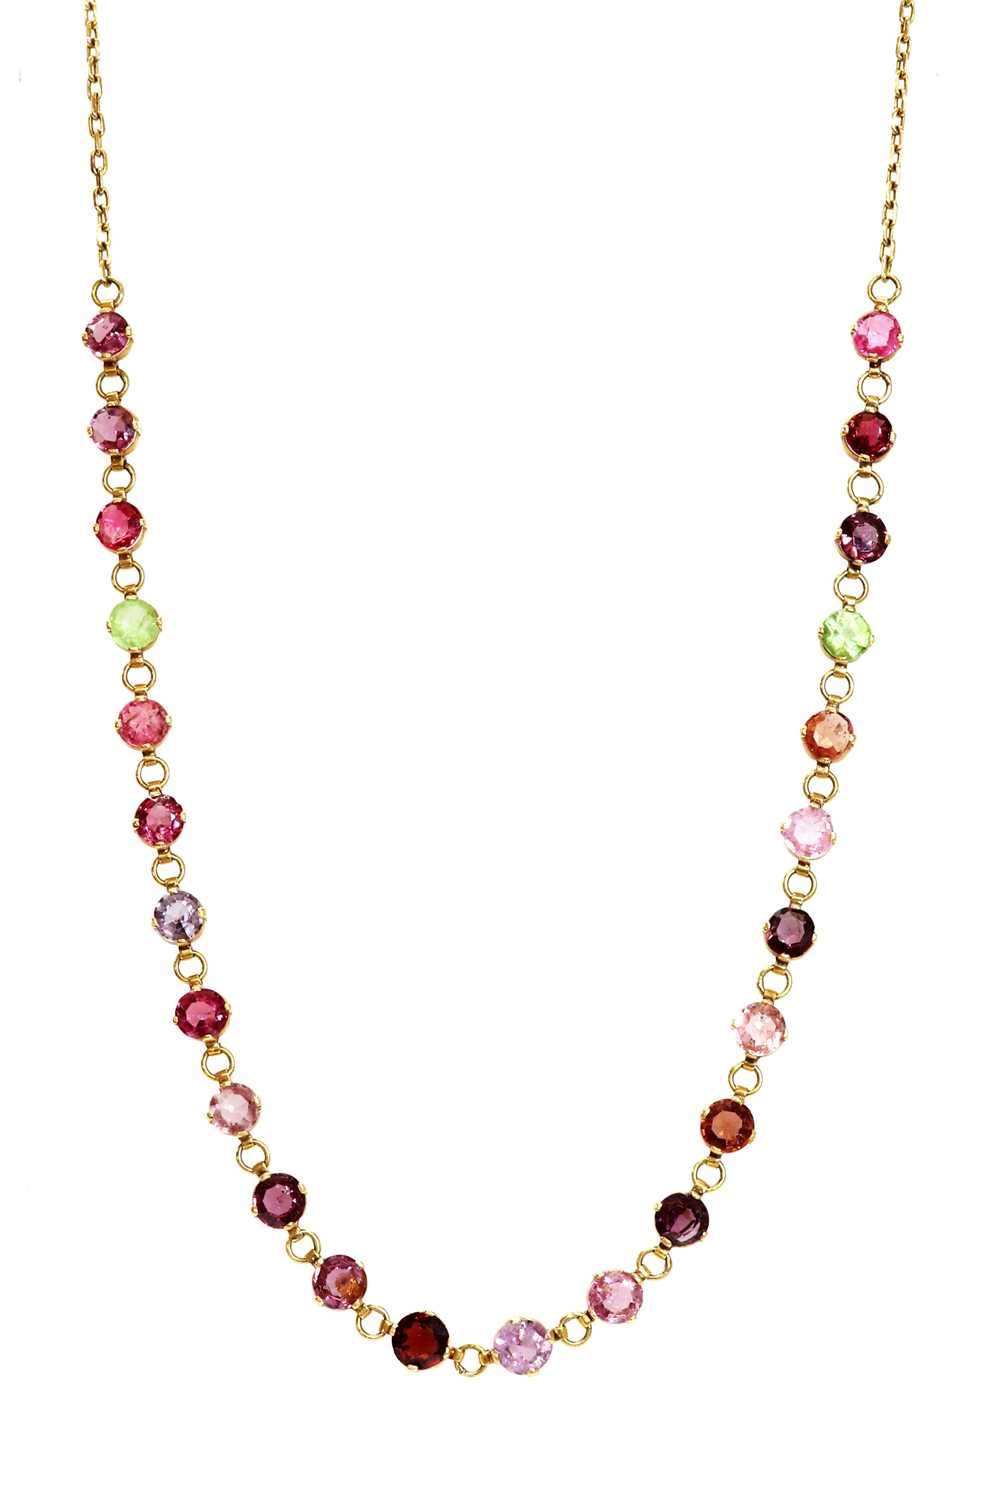 Lot 64 - A gold gemstone necklace, c.1910